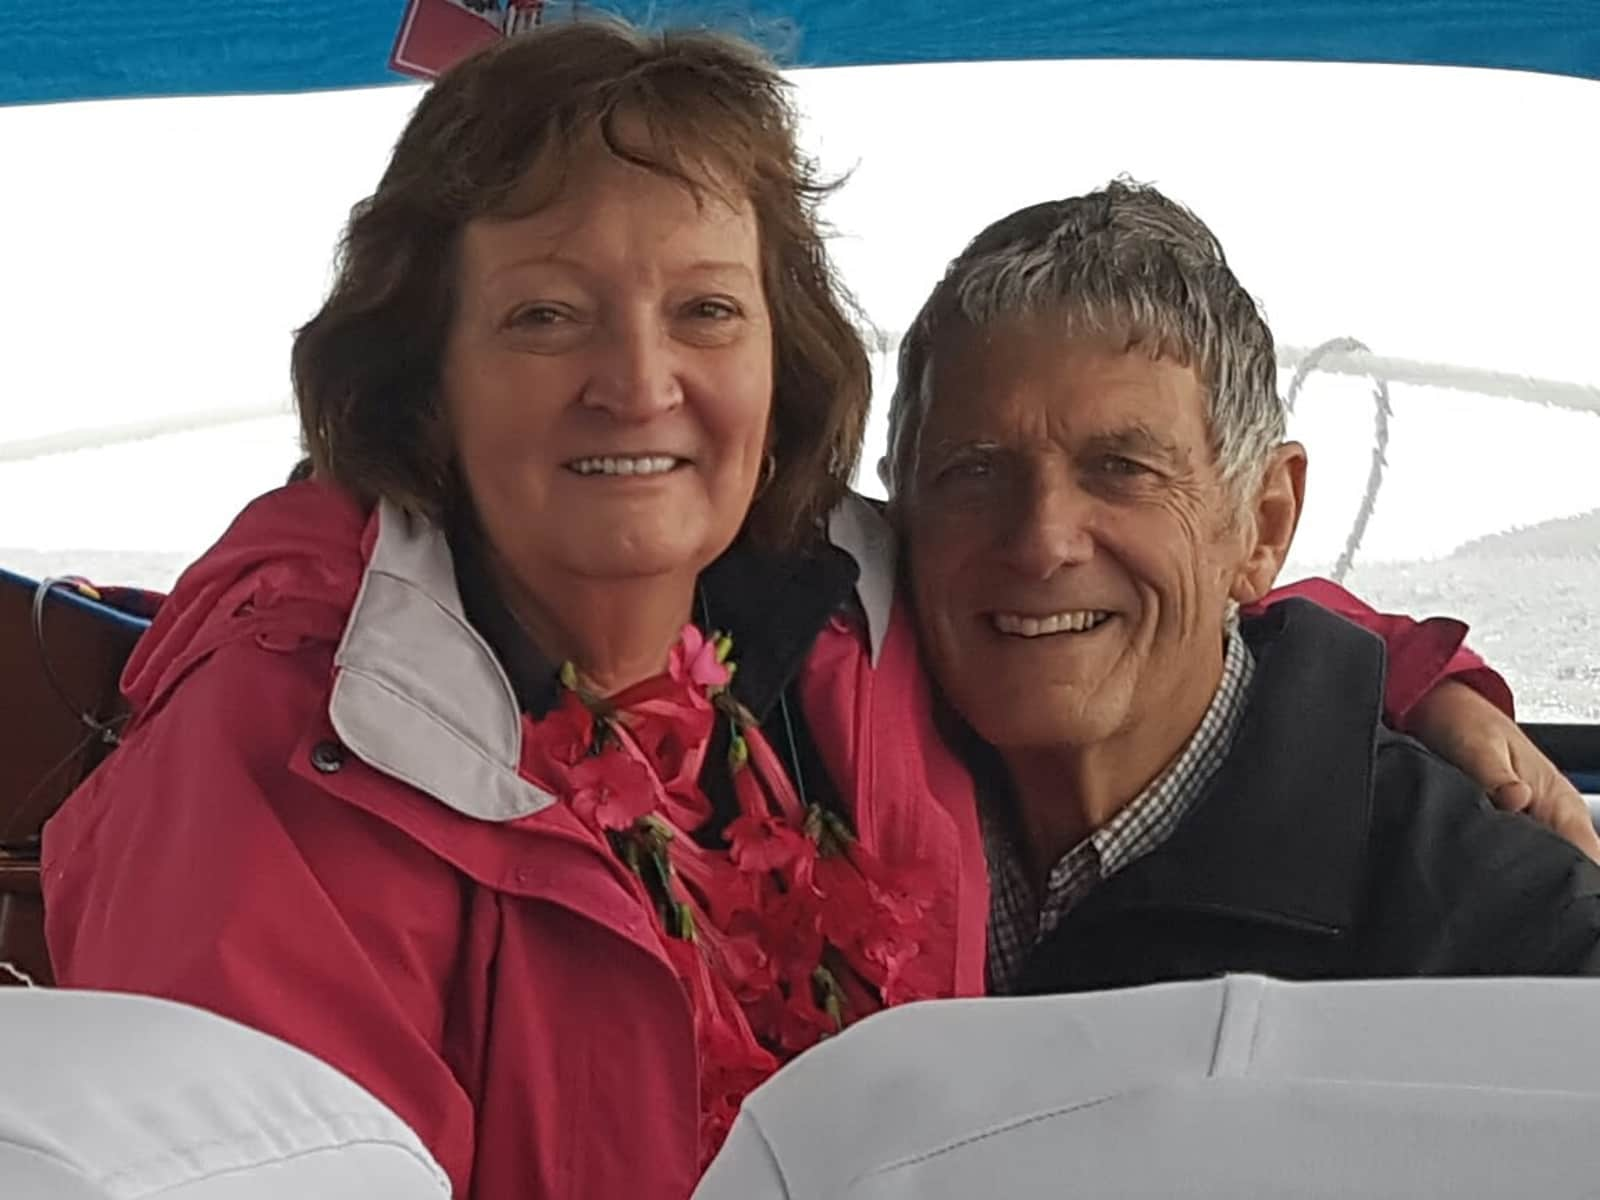 Linette & Mike from Gosford, New South Wales, Australia